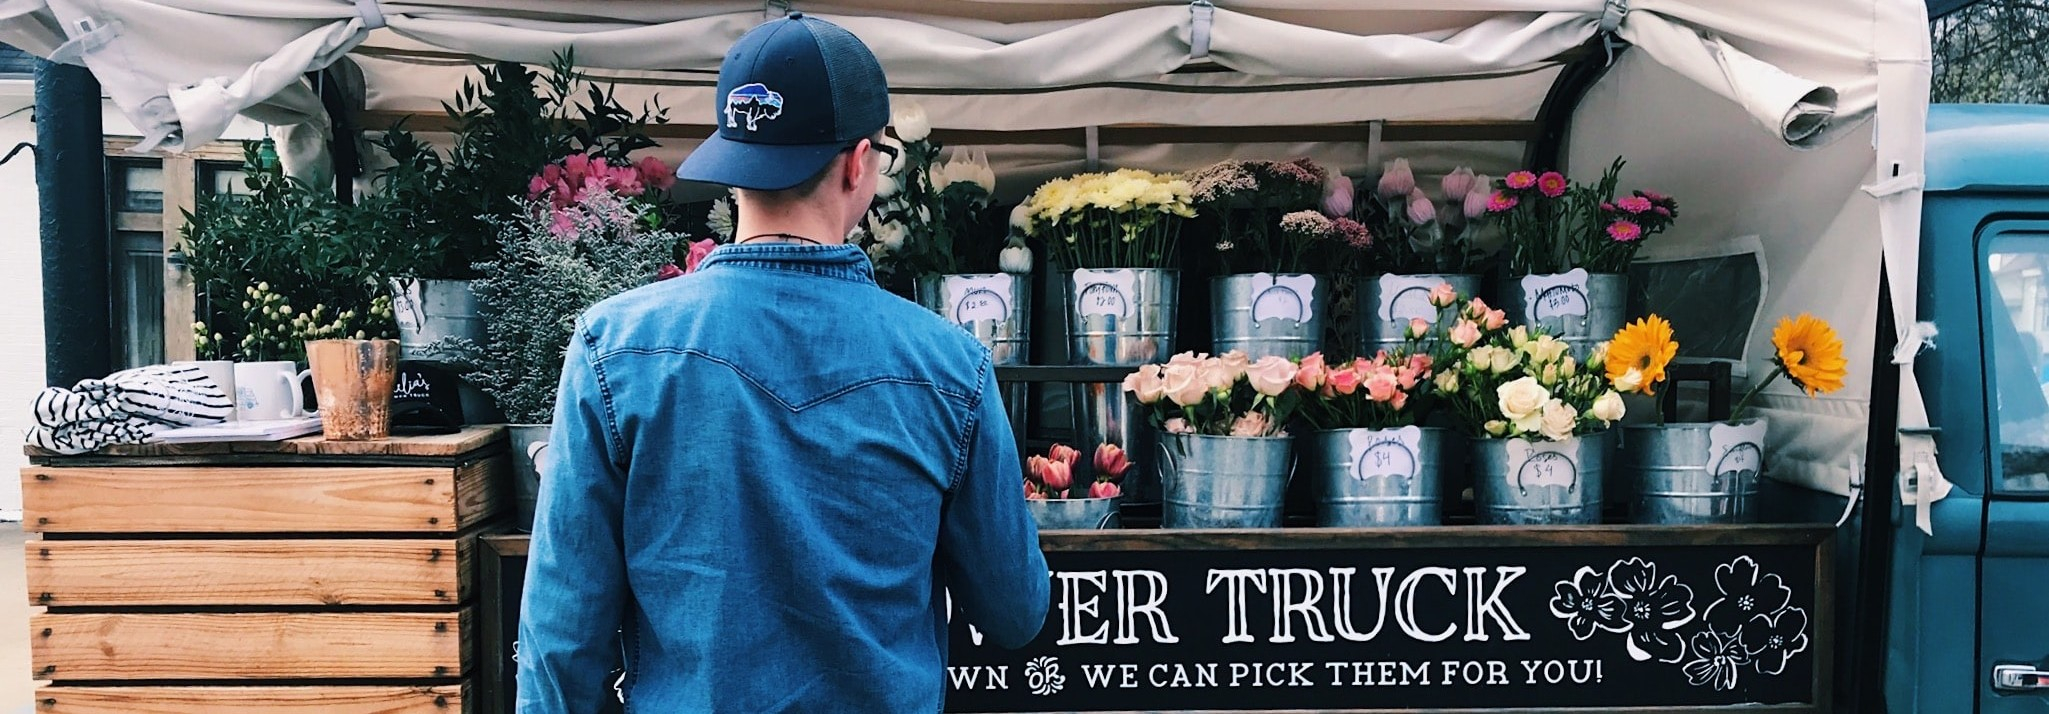 Flower sales boom as people try to brighten the mood